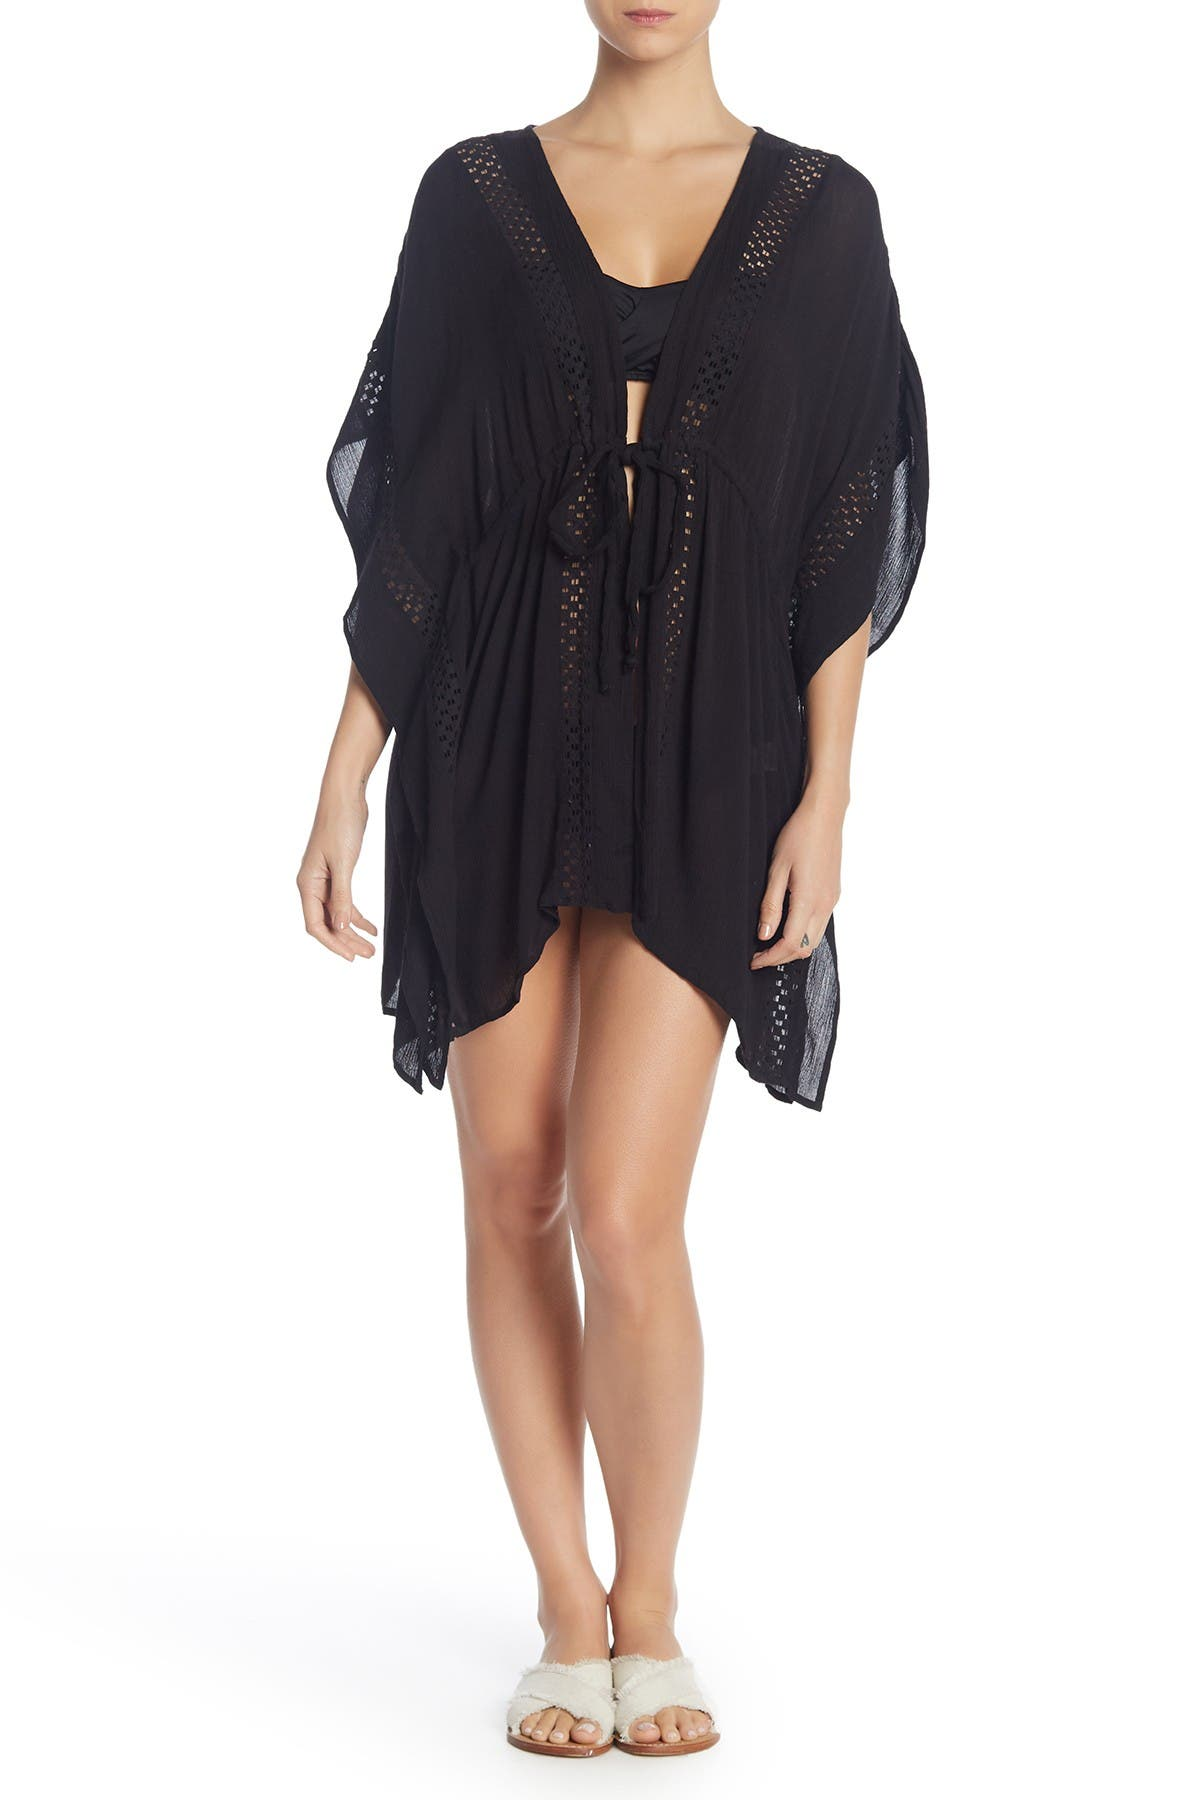 Image of ELAN Crochet Cover-Up Tunic